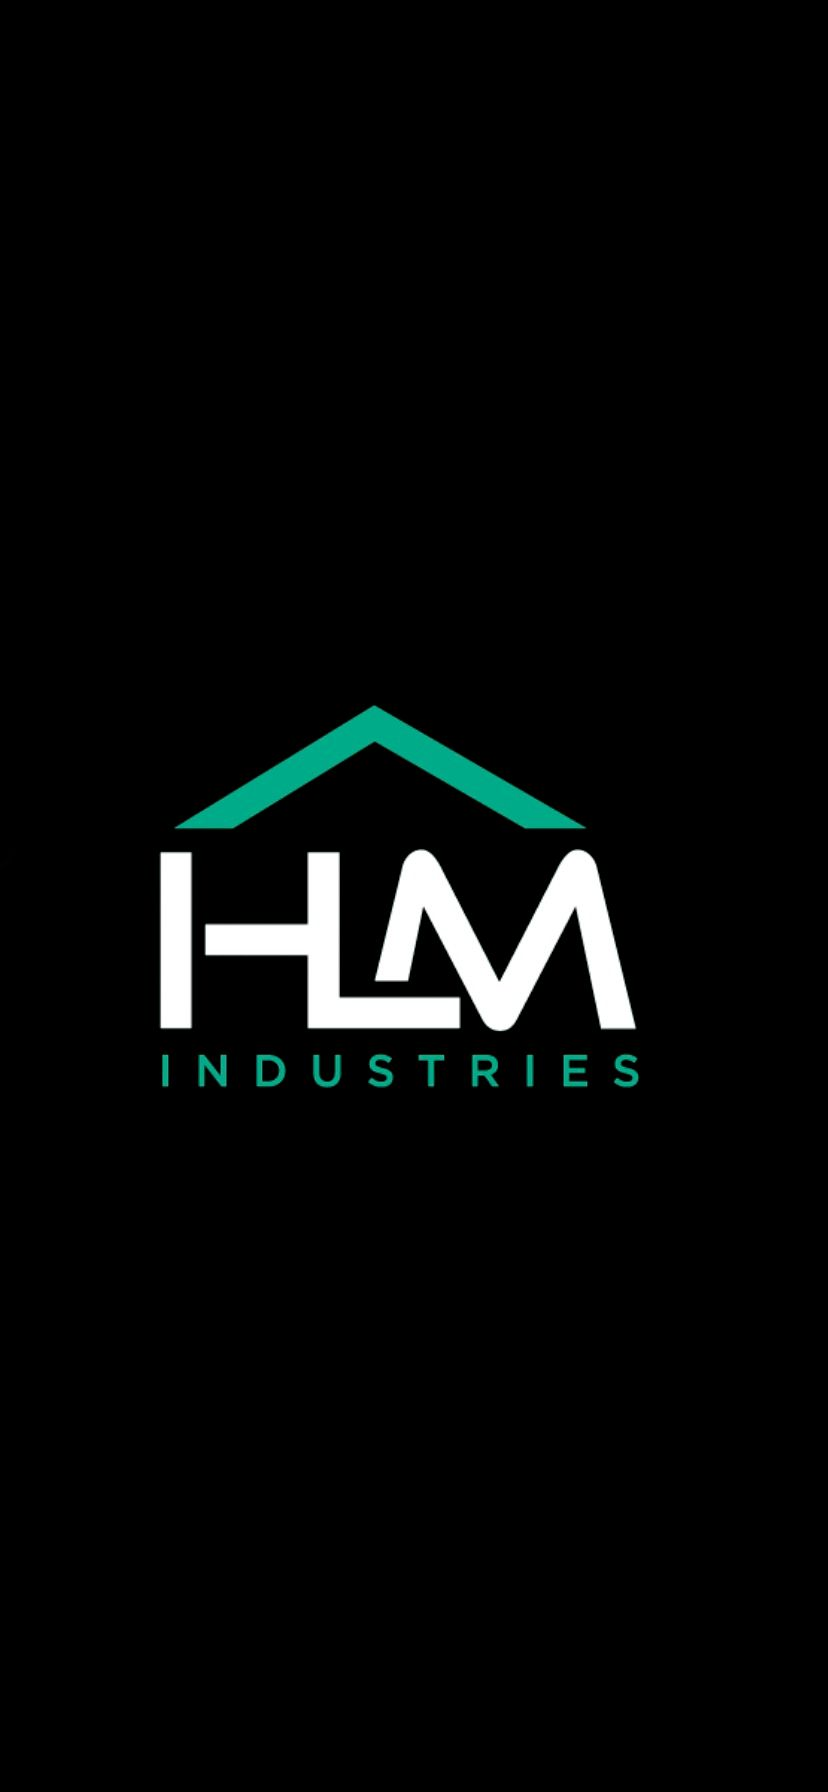 HLM Industries